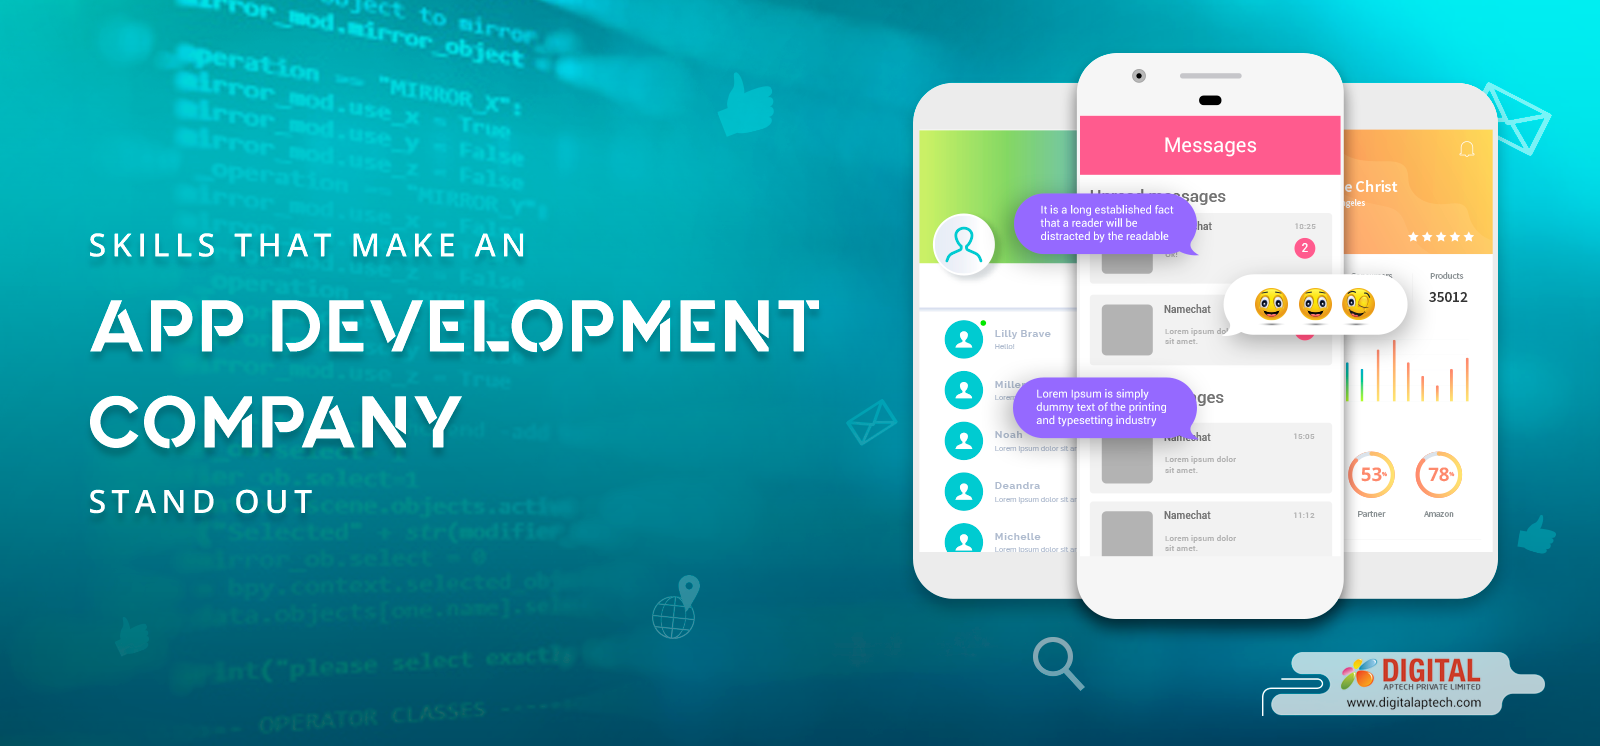 Skills of an App Development Company that You Should Consider Before Hiring